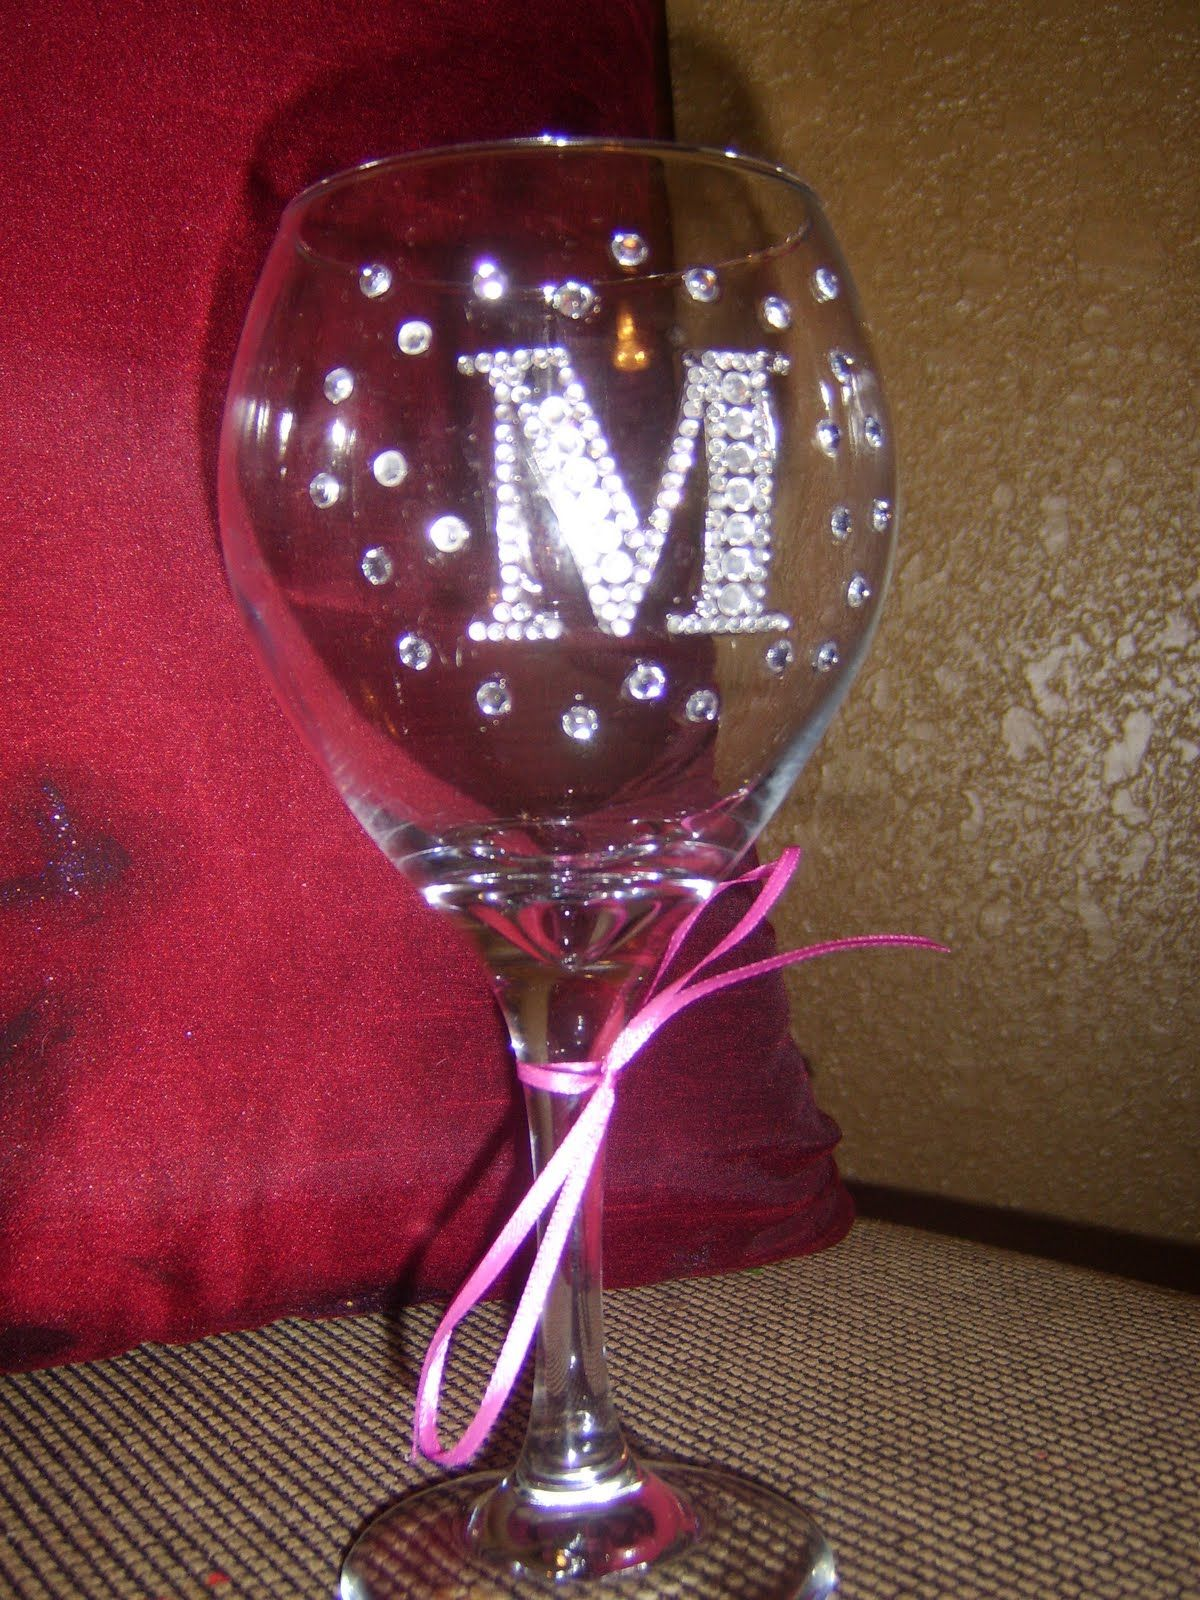 Pin By Dahlia Warner On Wedding Party Gifts Wine Glass Designs Funky Wine Glasses Glitter Diy Projects